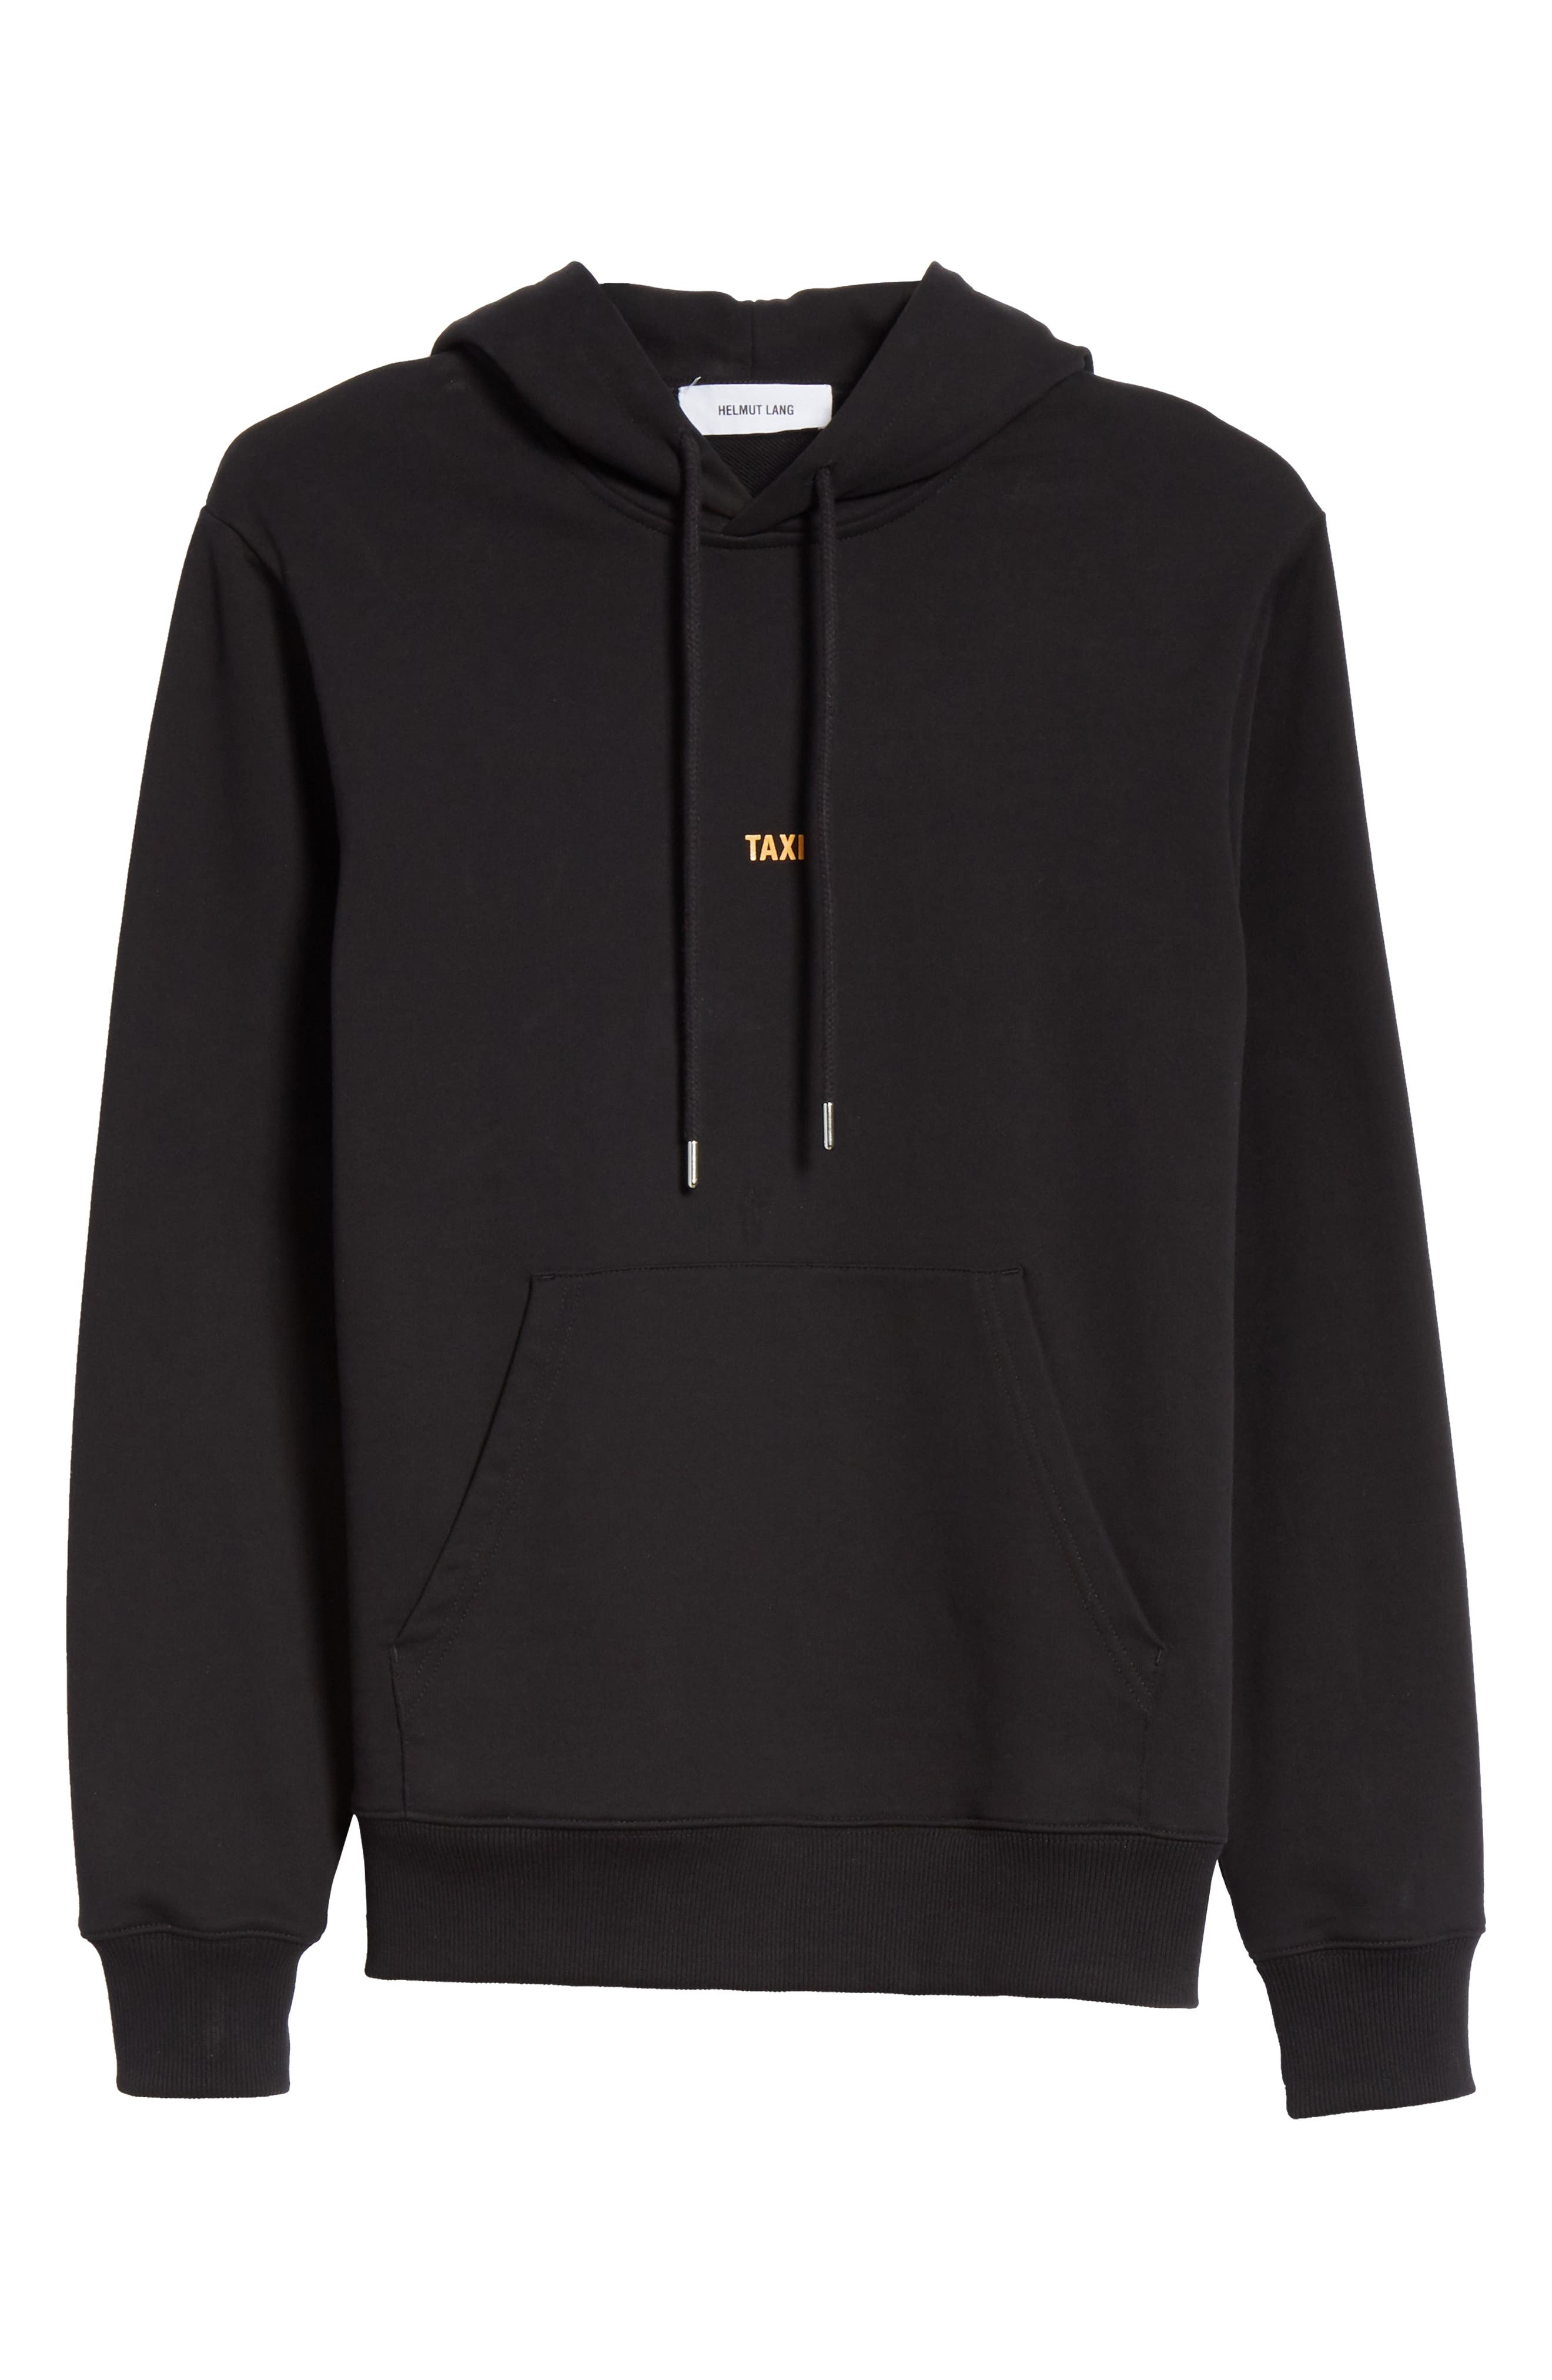 Taxi Hoodie,                             Alternate thumbnail 6, color,                             001